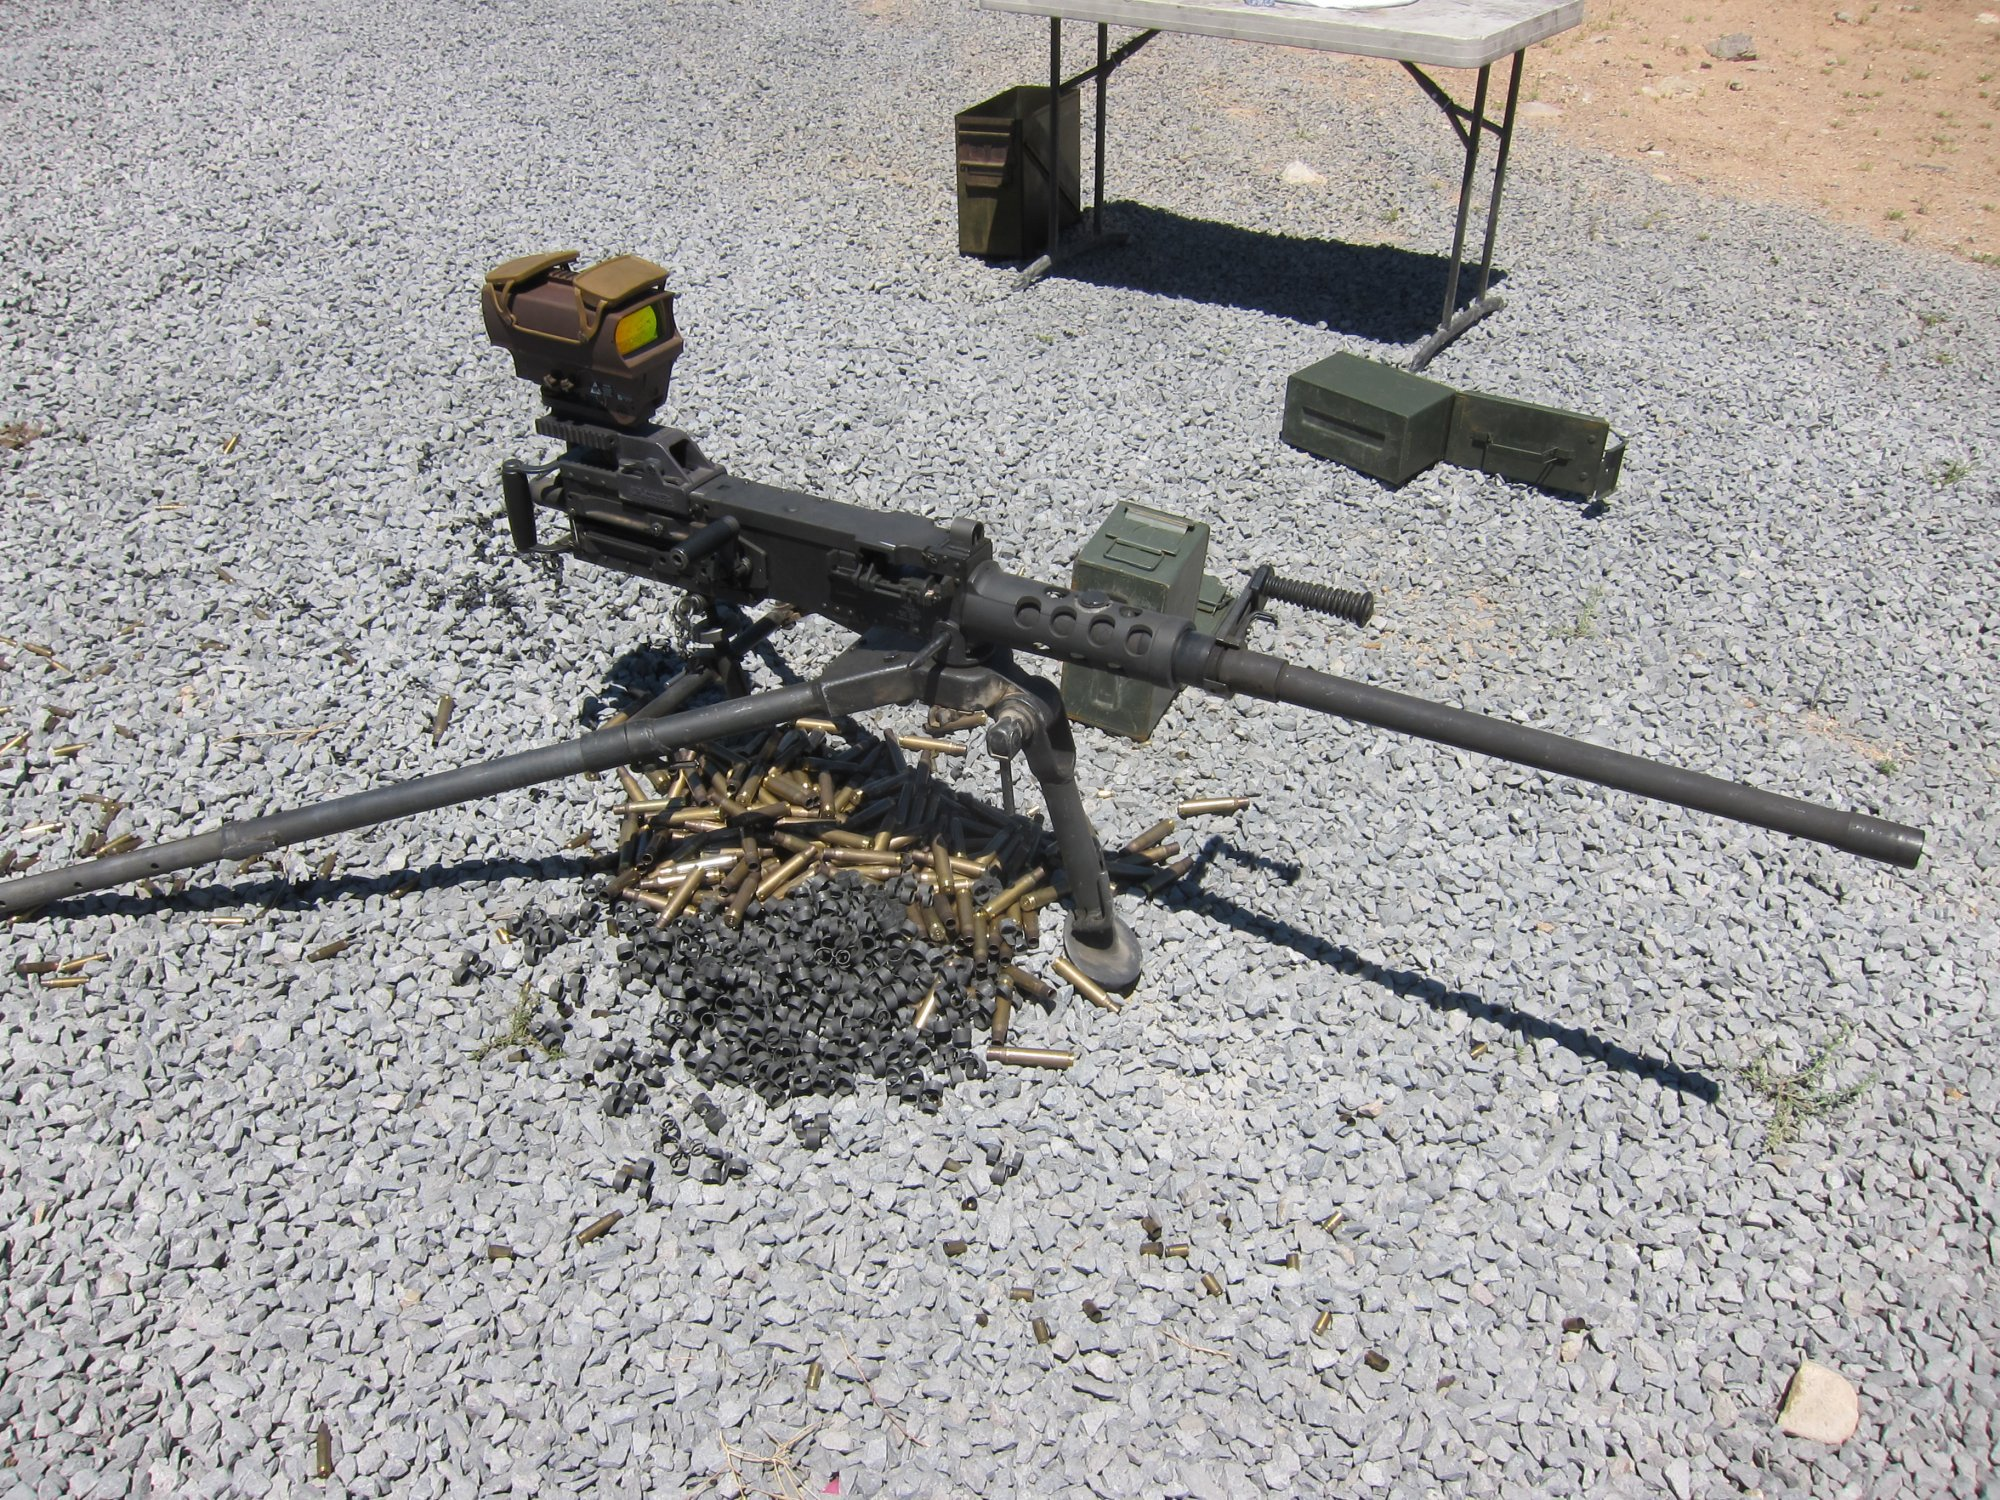 U.S._Ordnance_M2HB-QCB_.50_BMG_Heavy_Machine_Gun_(HMG)_David_Crane_Firing_at_Range_DefenseReview.com_(DR)_4